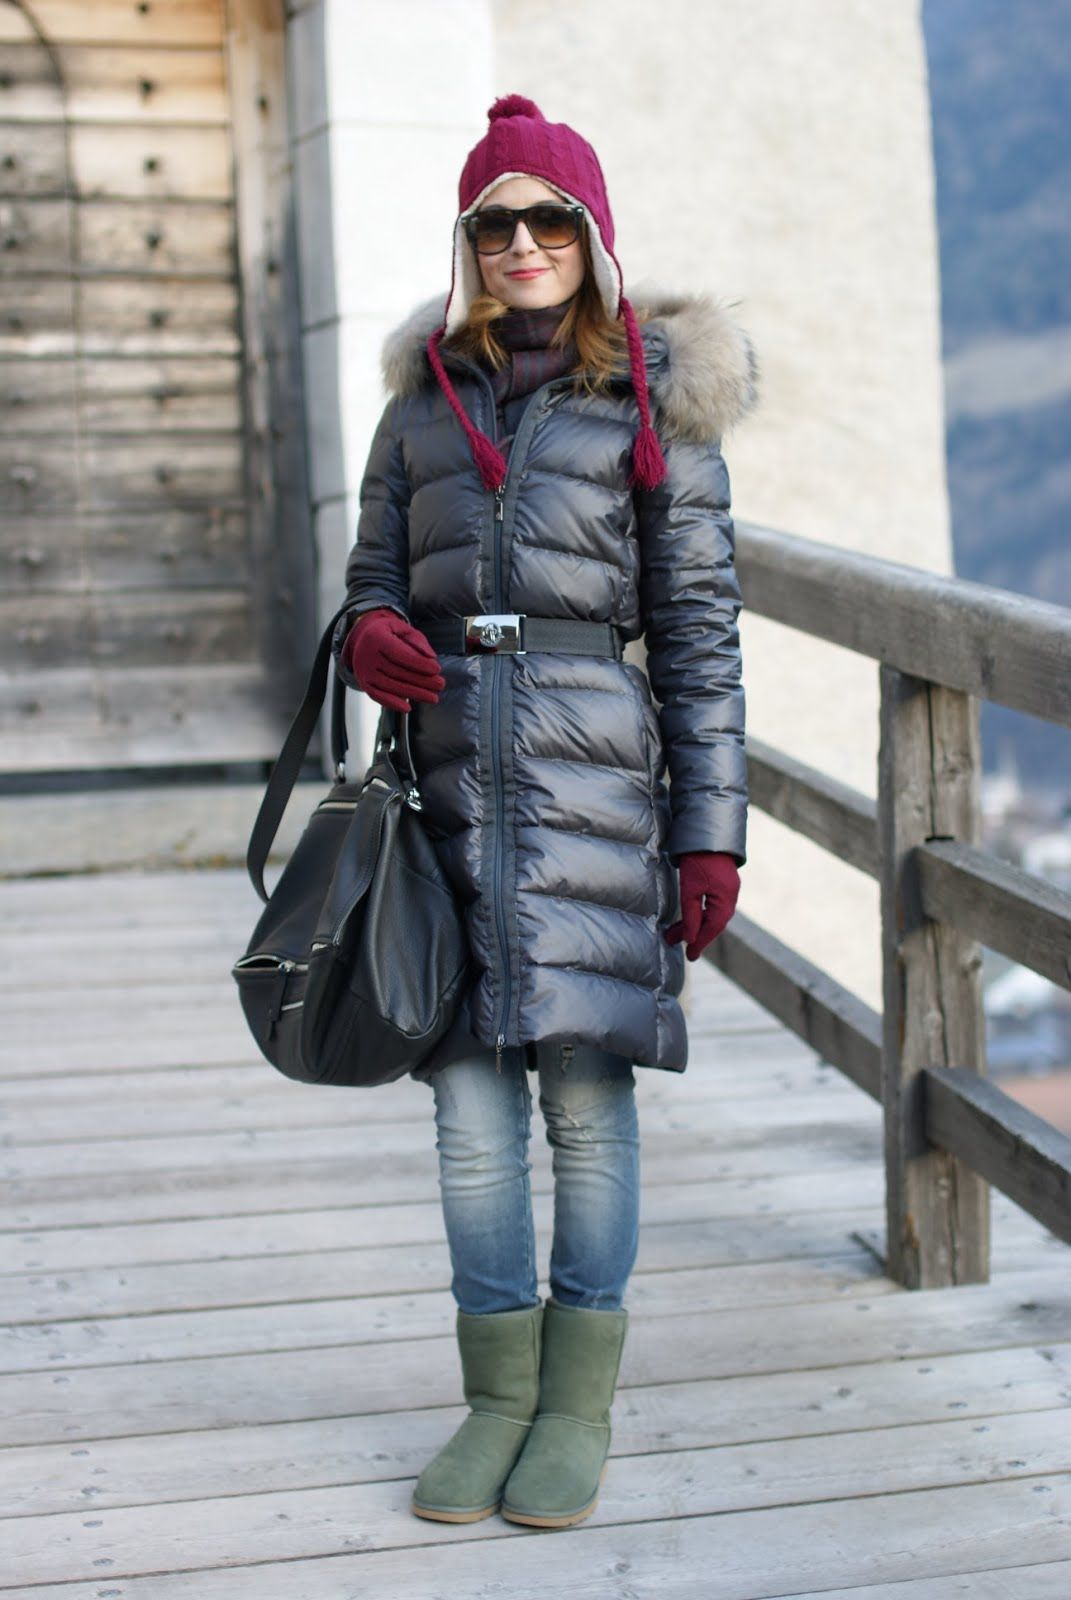 b2f109e44f8 A cold weather outfit: I need my UGG boots ! | Fashion | Ugg boots ...